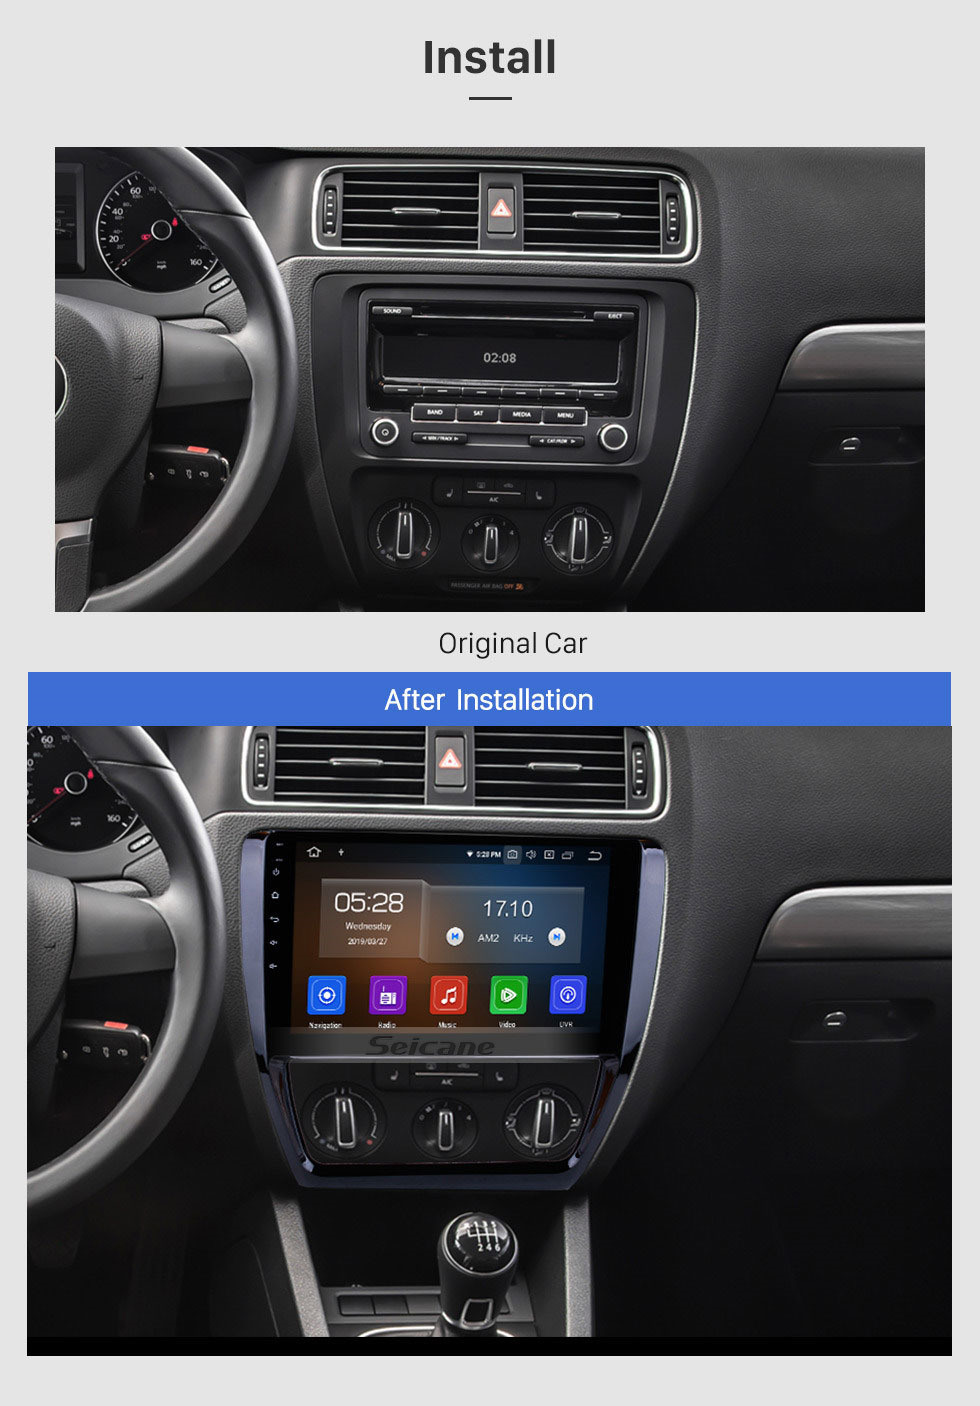 Seicane 10.1 inch HD Touchscreen Android 10.0 Radio for 2012-2015 VW Volkswagen SAGITAR GPS Navigation Bluetooth Phone WIFI SWC USB Carplay Rearview OBD2